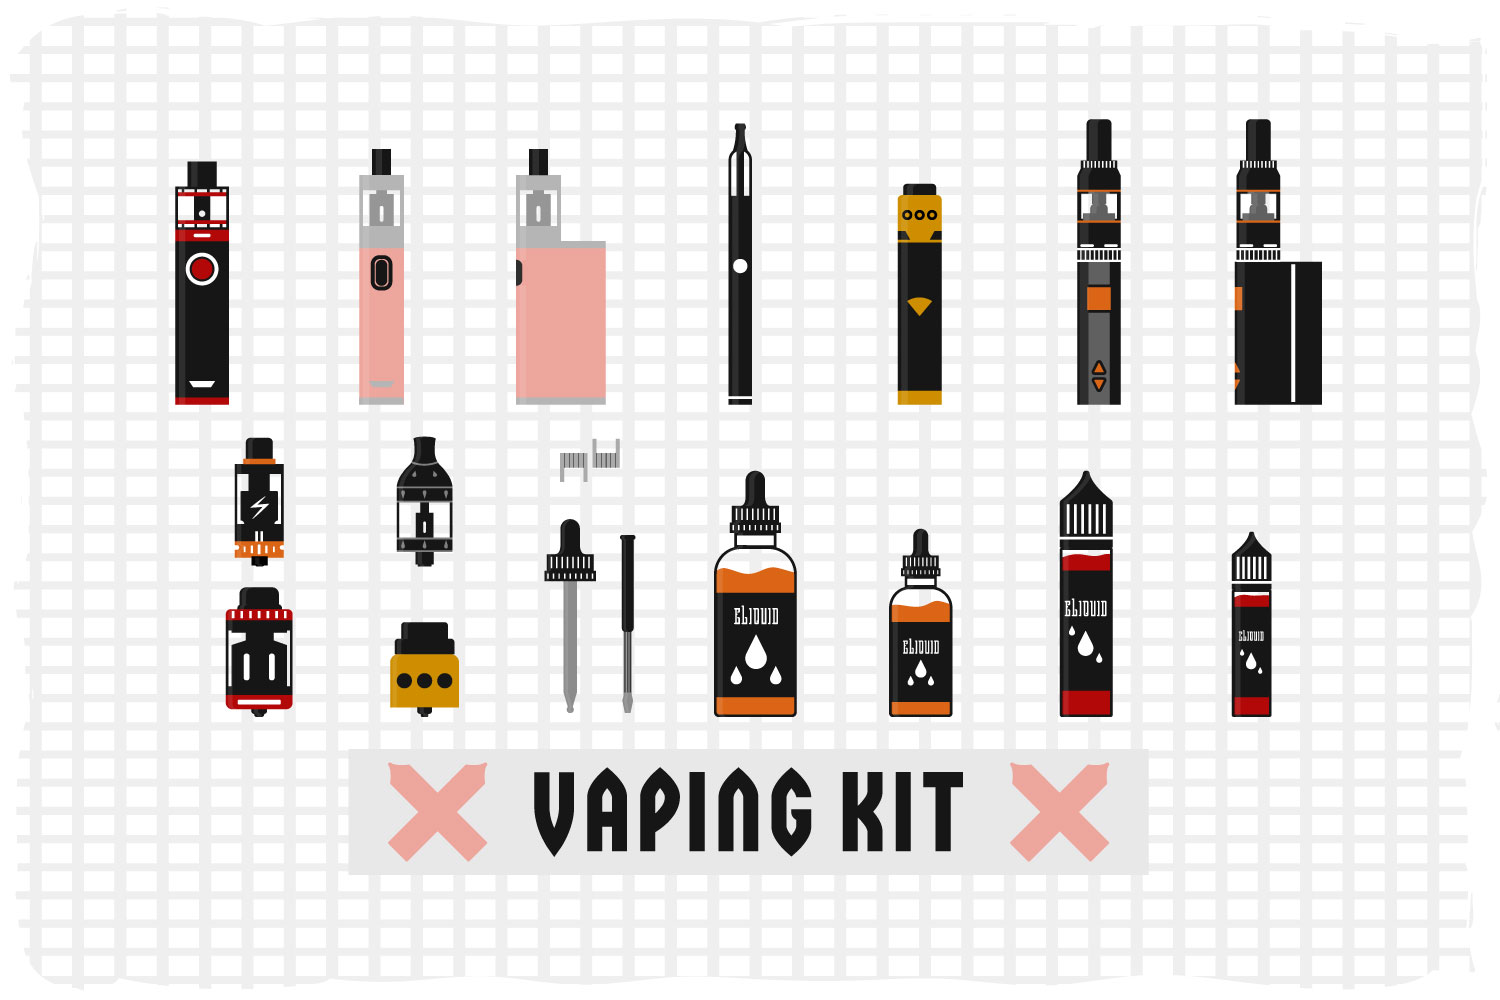 Flat vector illustration of a vaping kit example image 1